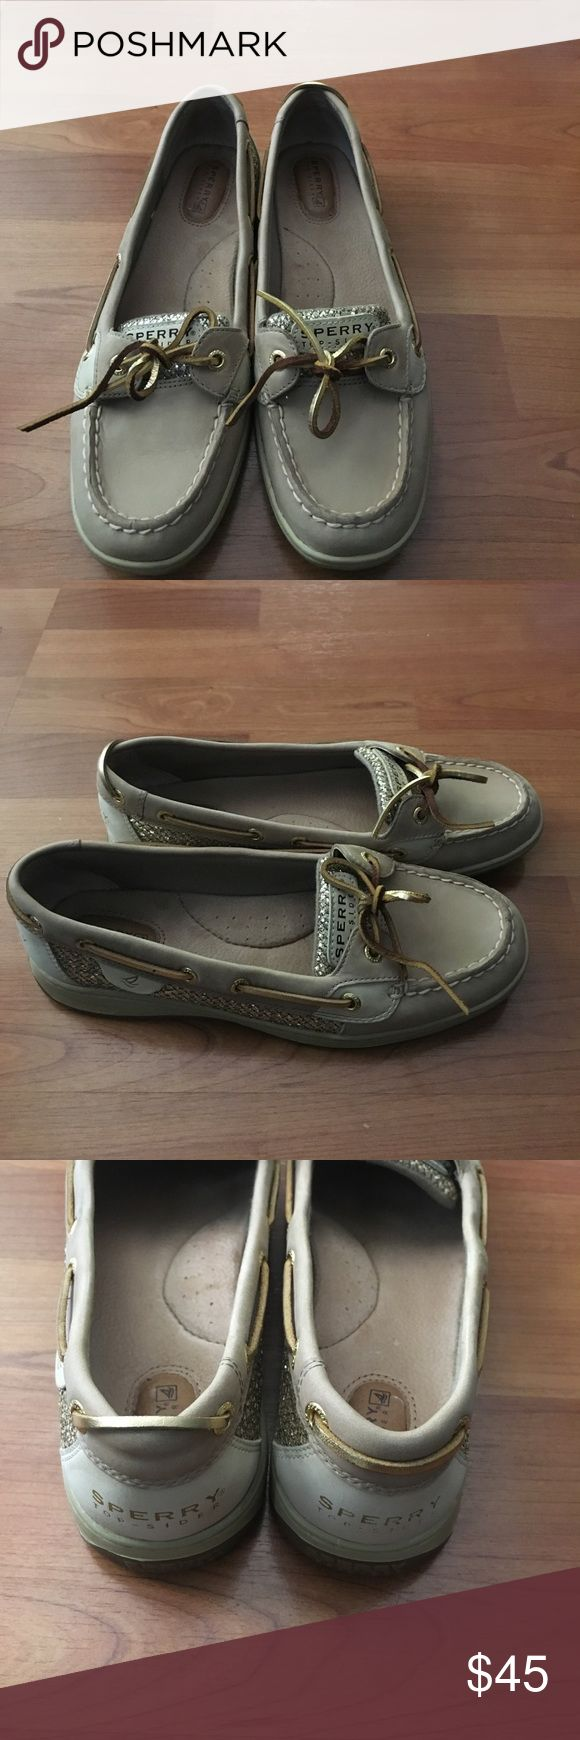 Women's Sperry Top Sided Shoes Size 9 New No Box New no box Sperry Top sided Shoes Size 9 sides has glitter style. Light brown color Sperry Top-Sider Shoes